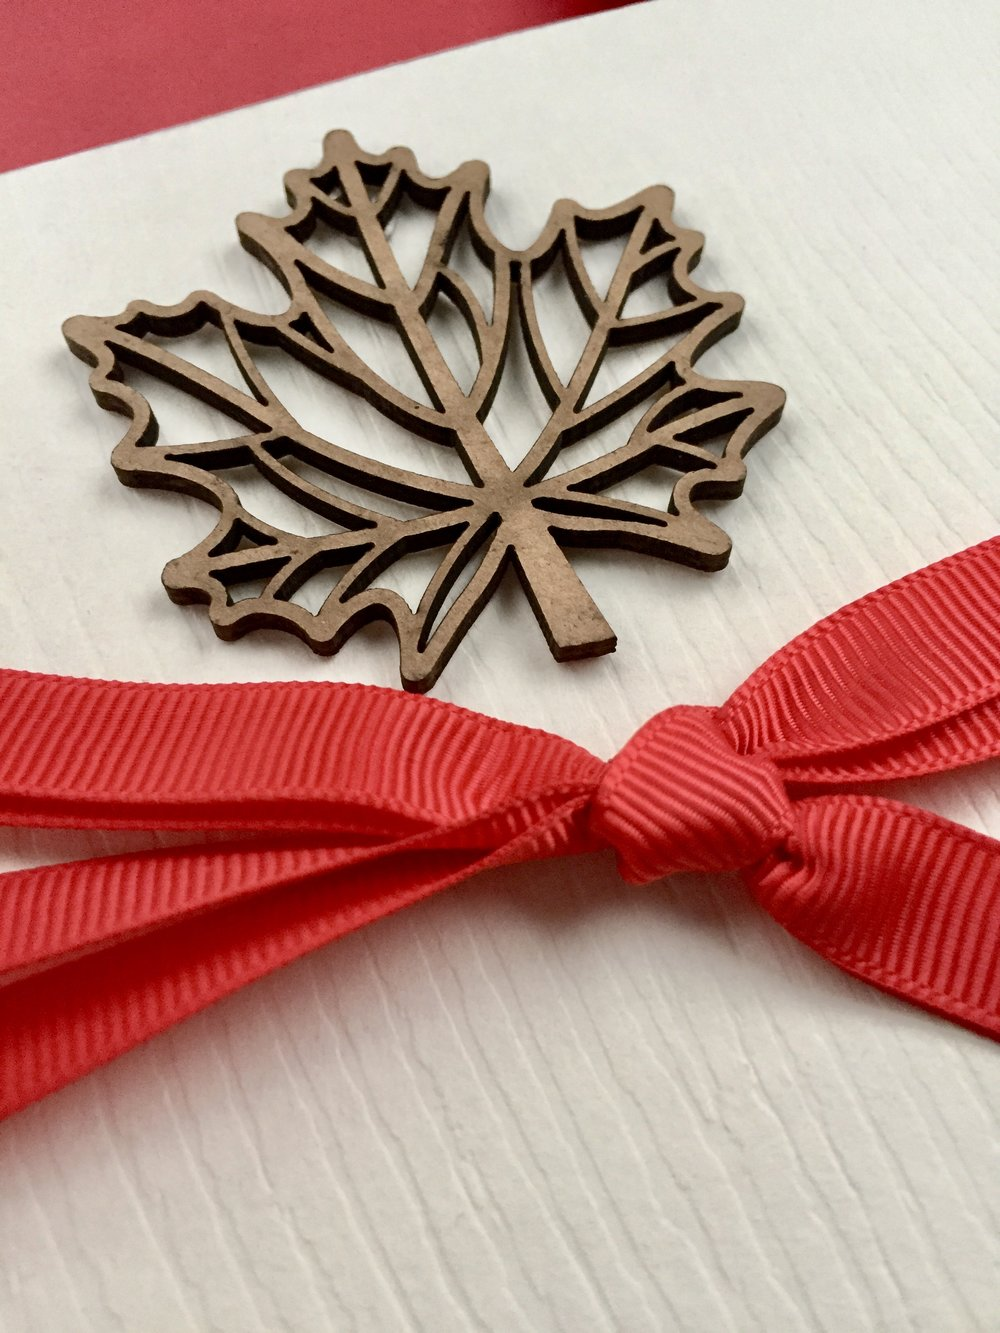 Canadian-themed business gifts (detail), wrapped by Corinna vanGerwen